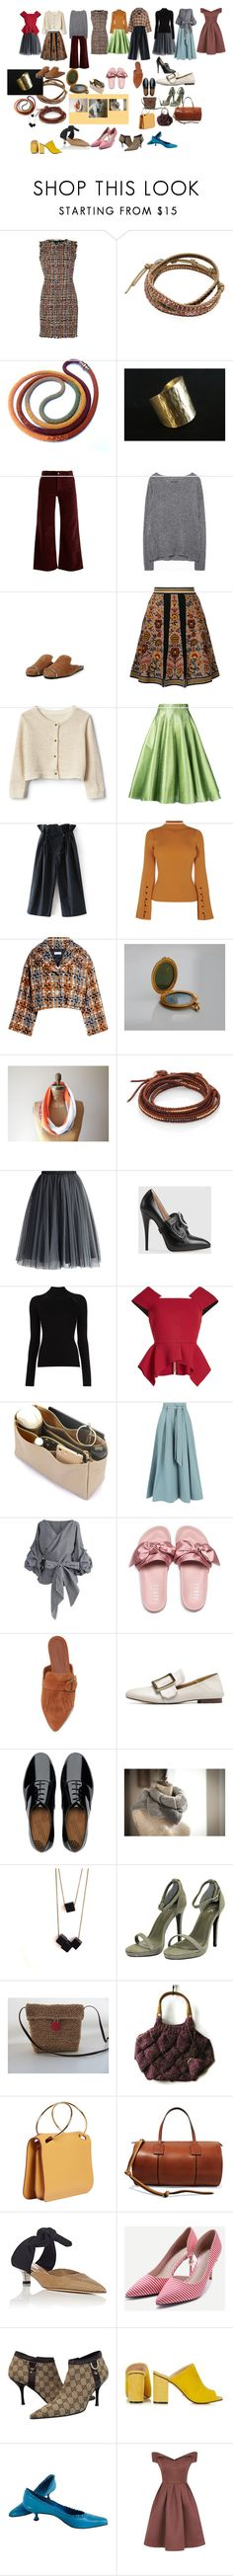 """""""FOR YOU"""" by talma-vardi ❤ liked on Polyvore featuring Alexander McQueen, Chan Luu, Eve Denim, Zadig & Voltaire, Alexander Wang, M Missoni, Bambah, Sonia Rykiel, Chicwish and Gucci"""